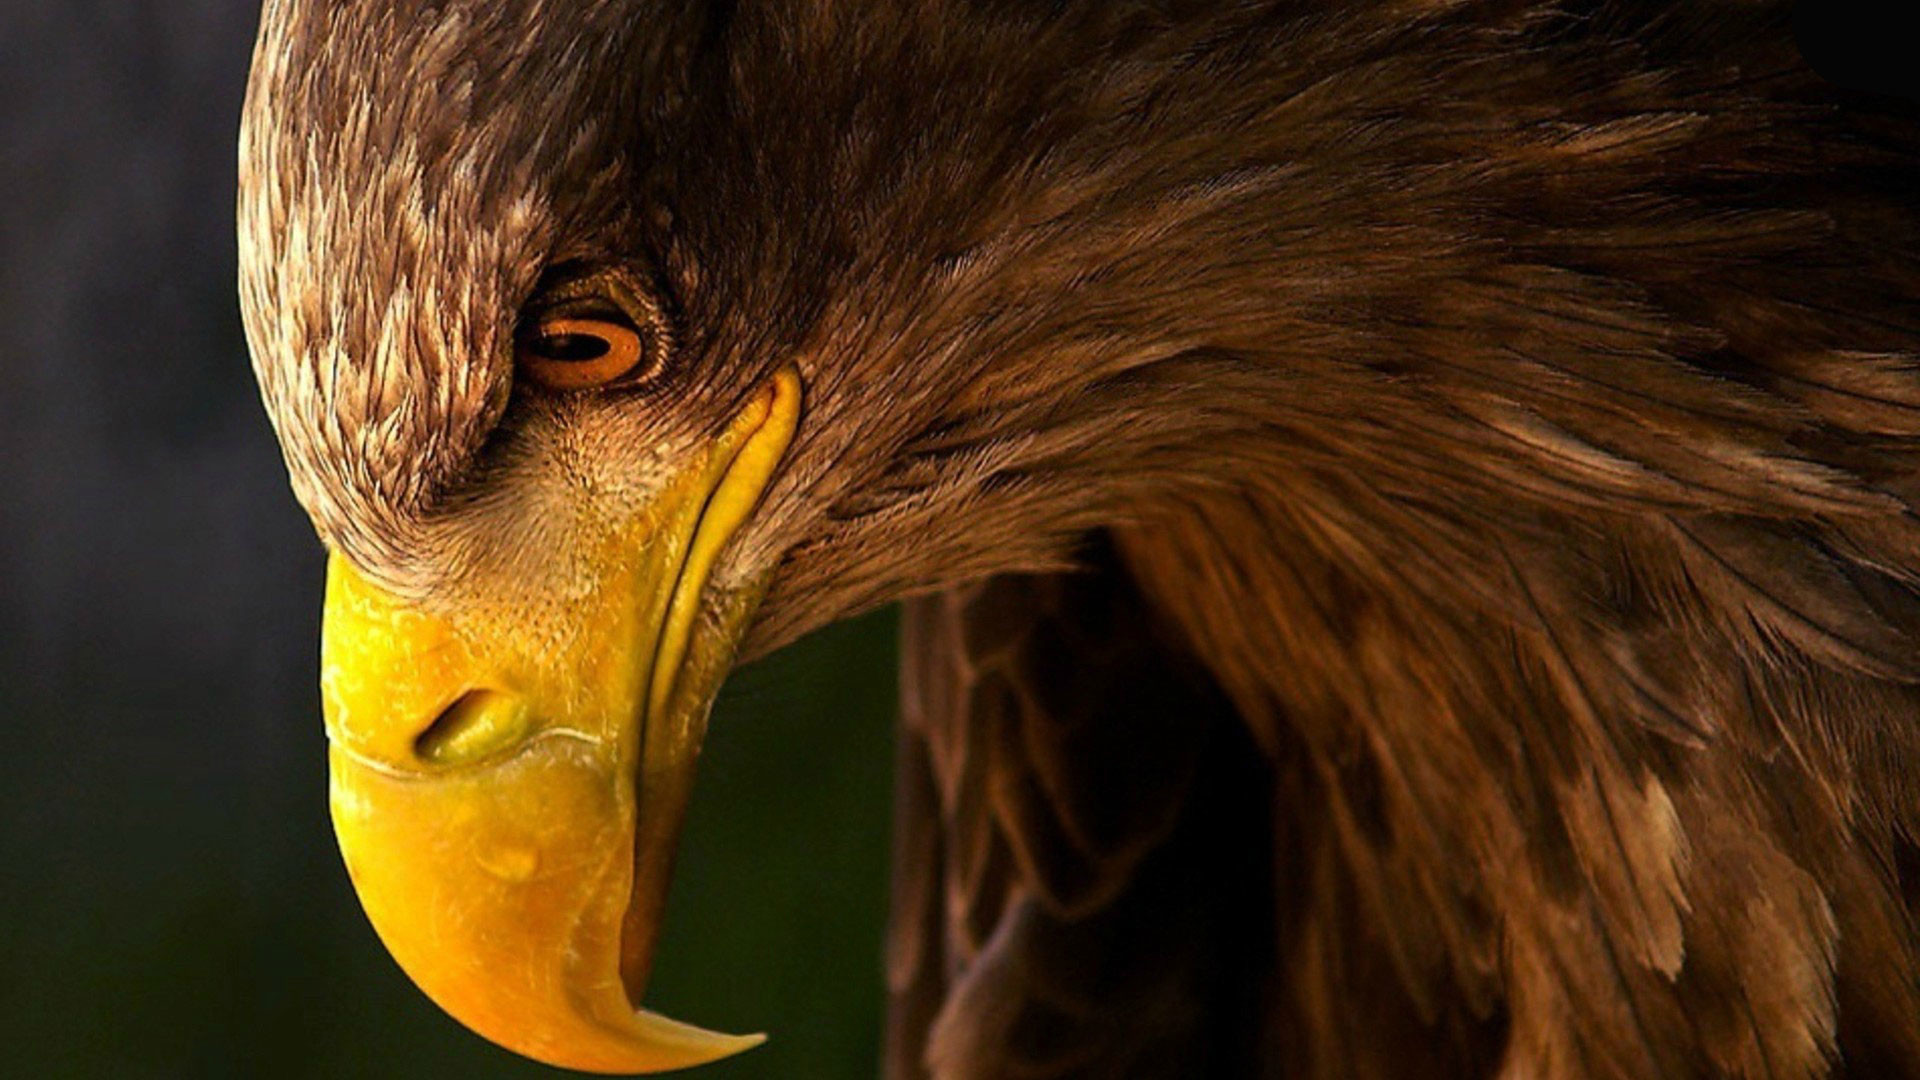 1920x1080 Golden Eagle wallpaper high definition